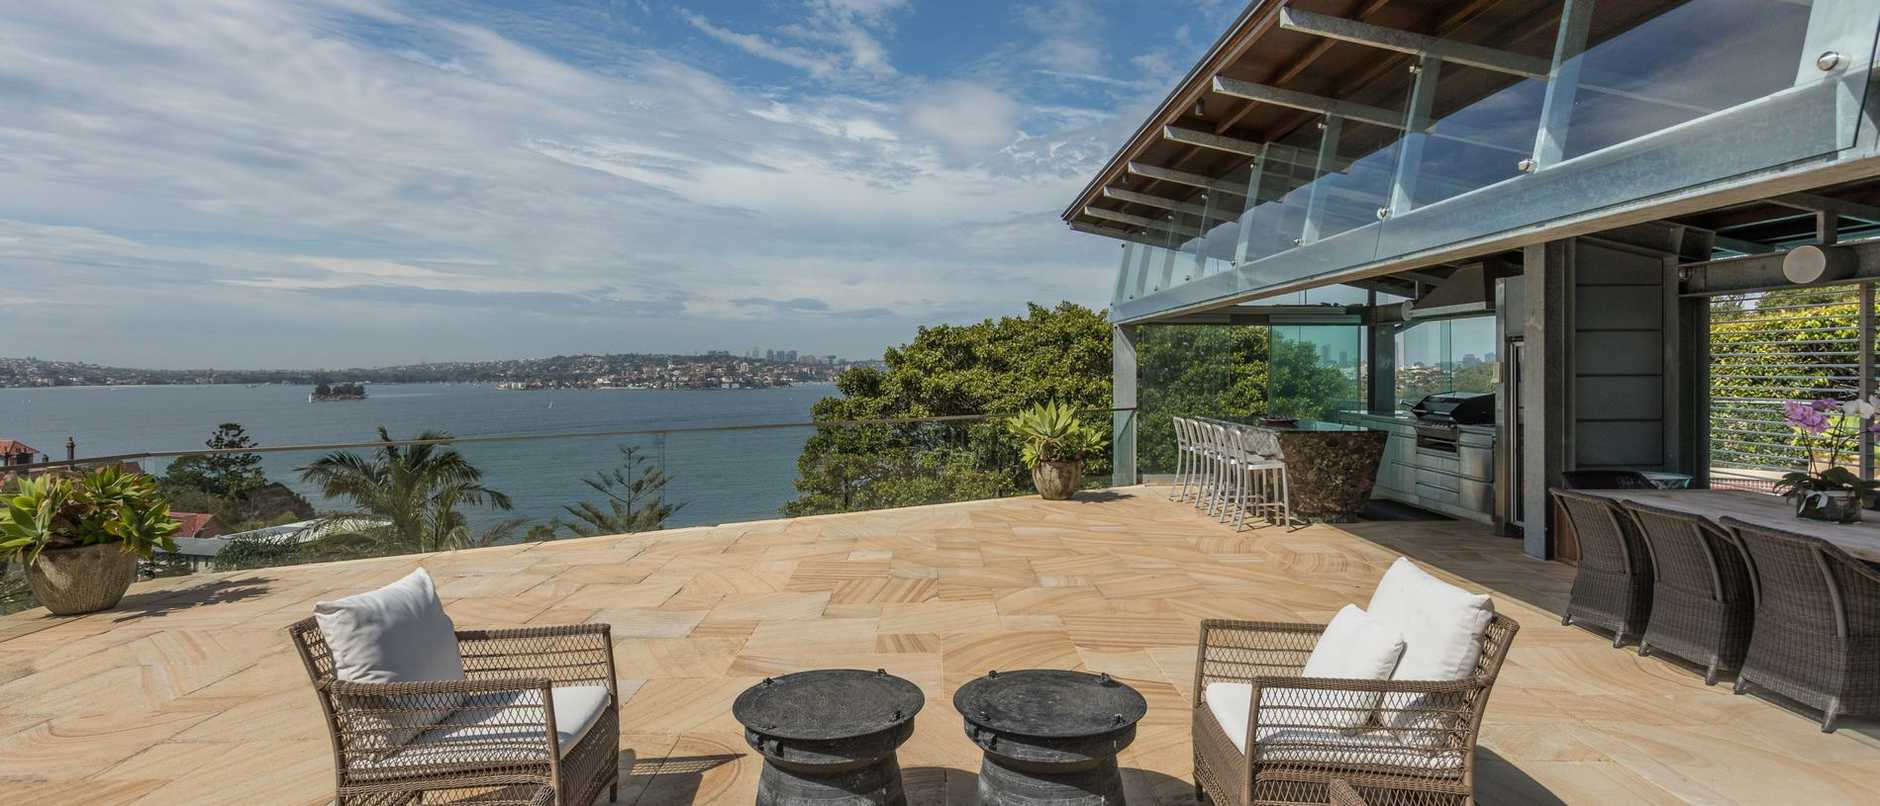 Foreign buyers and expats went toe to toe for this phenomenal five-bedroom home, but a local family won the day.